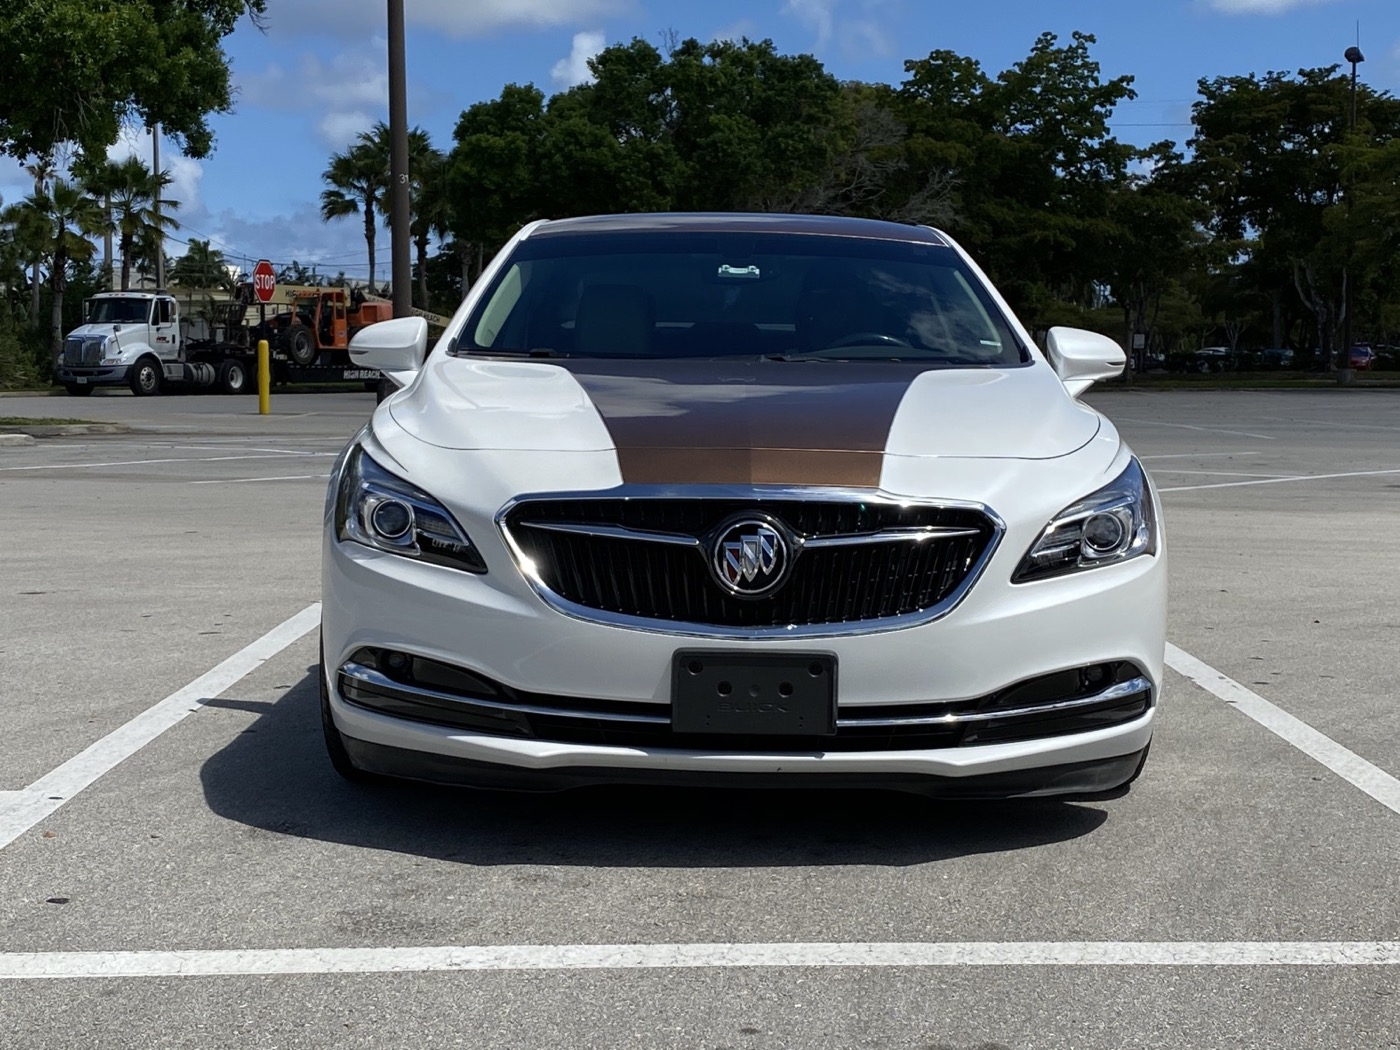 Check Out This Special 2018 Buick Lacrosse | Gm Authority New 2022 Buick Lucerne Rims, Tire Size, Headlights